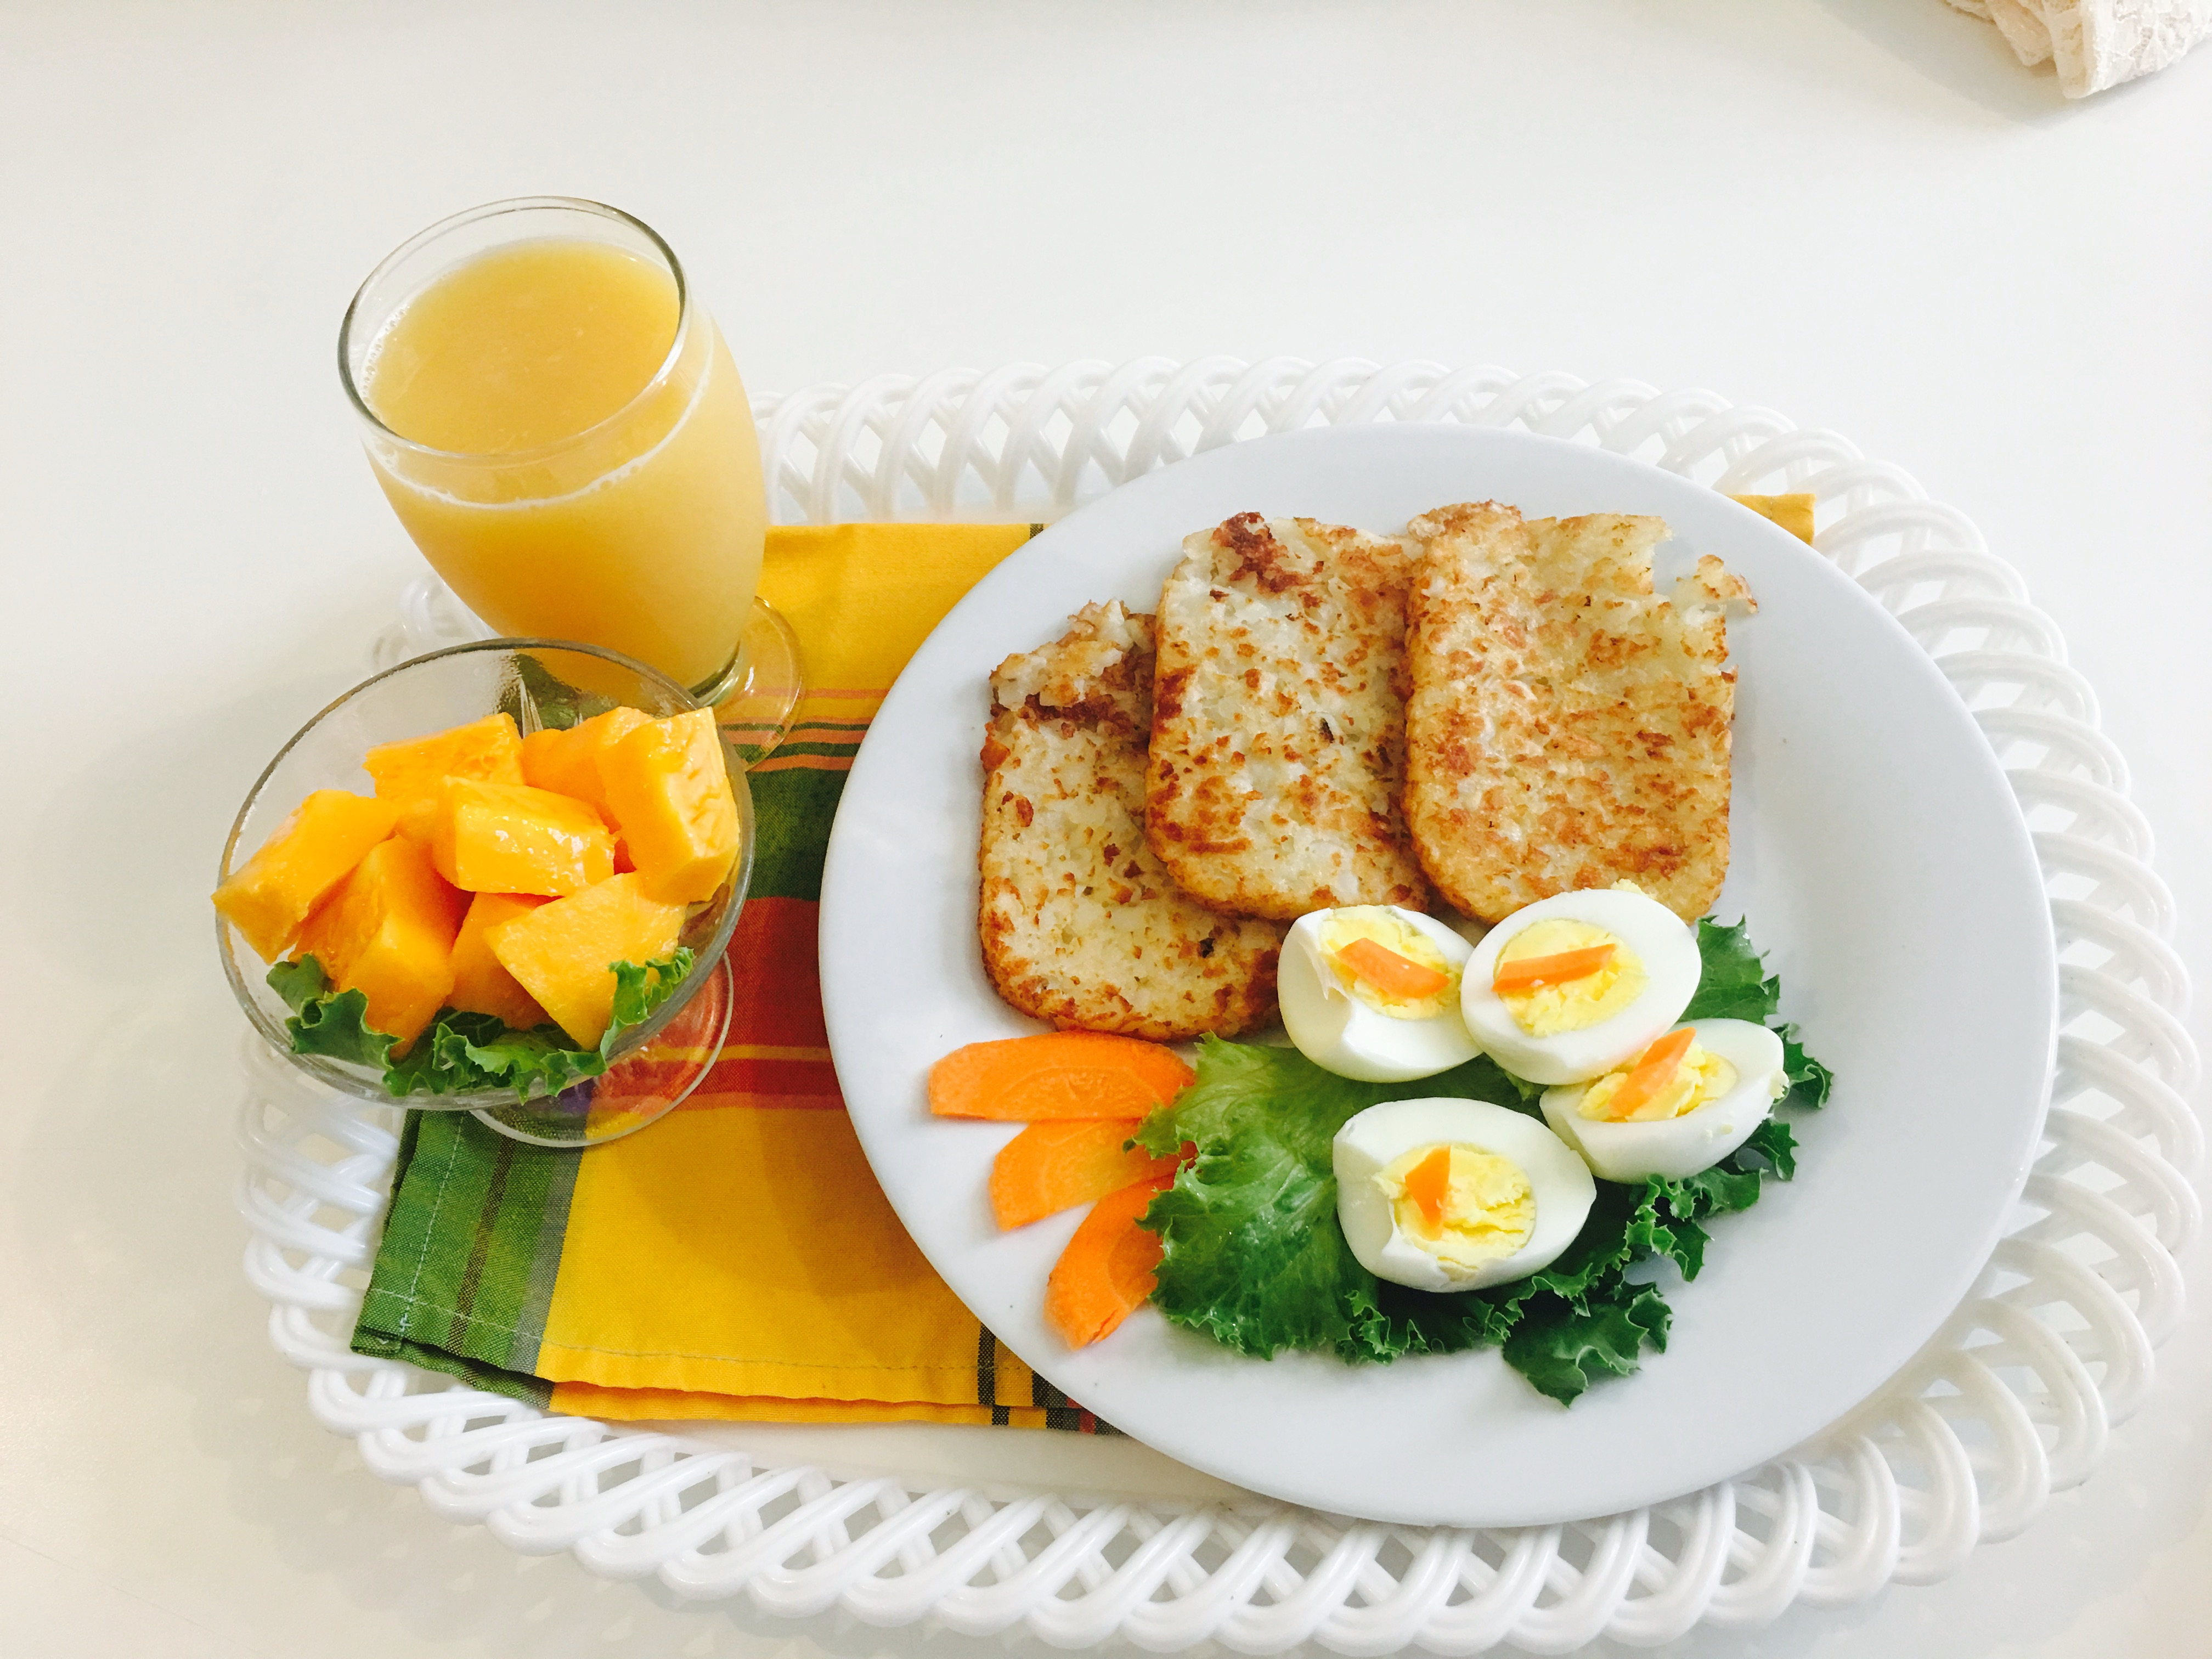 <p>We offer both Caribbean or Continental breakfasts</p>